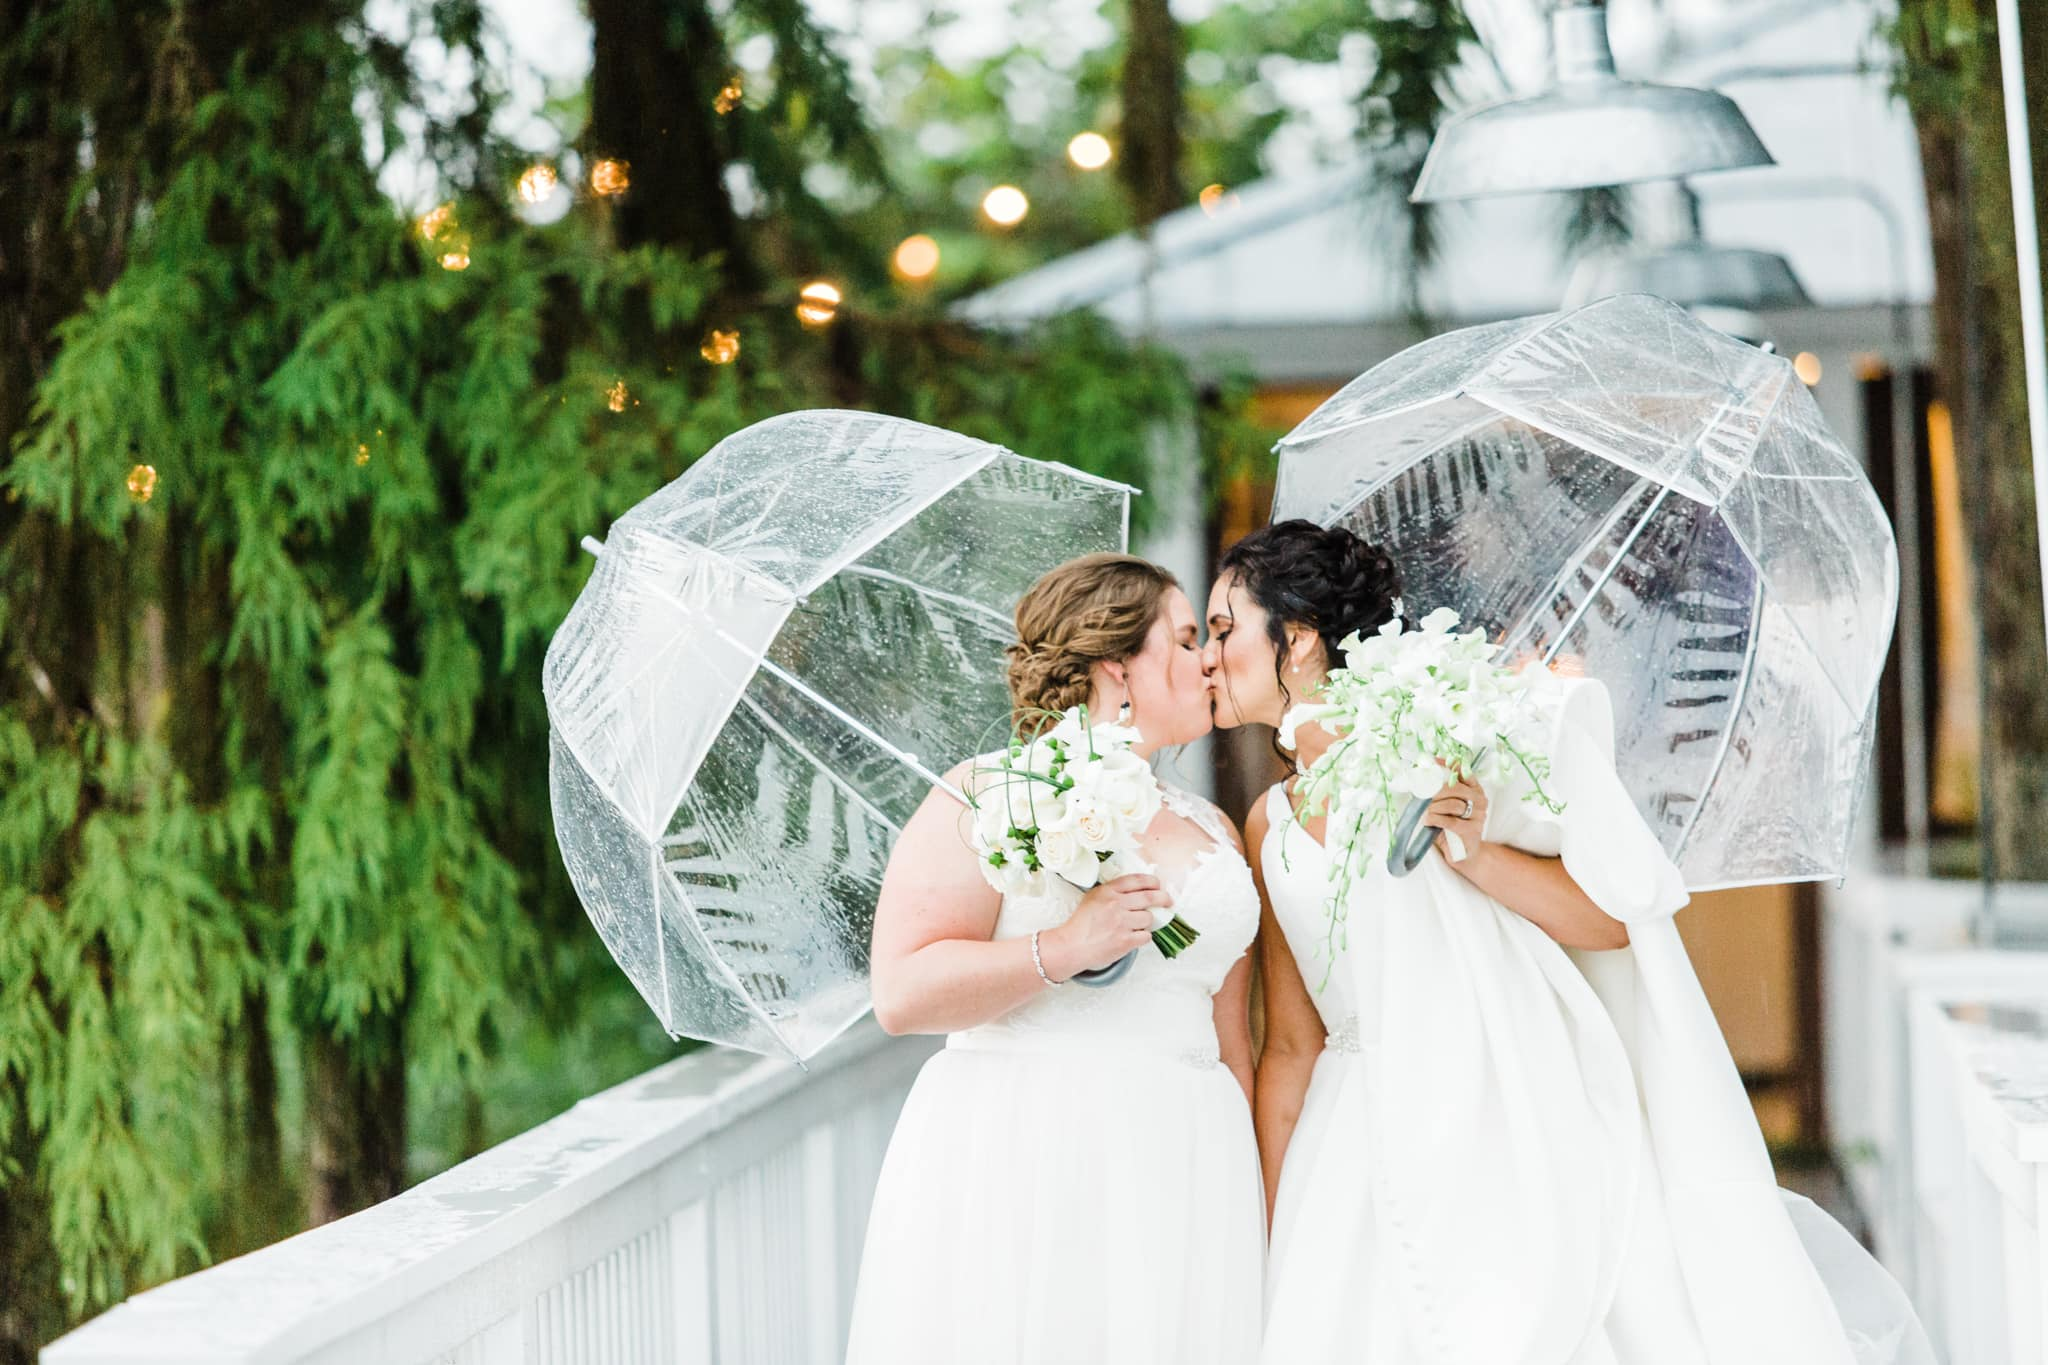 two brides kissing in the rain under clear bubble umbrellas